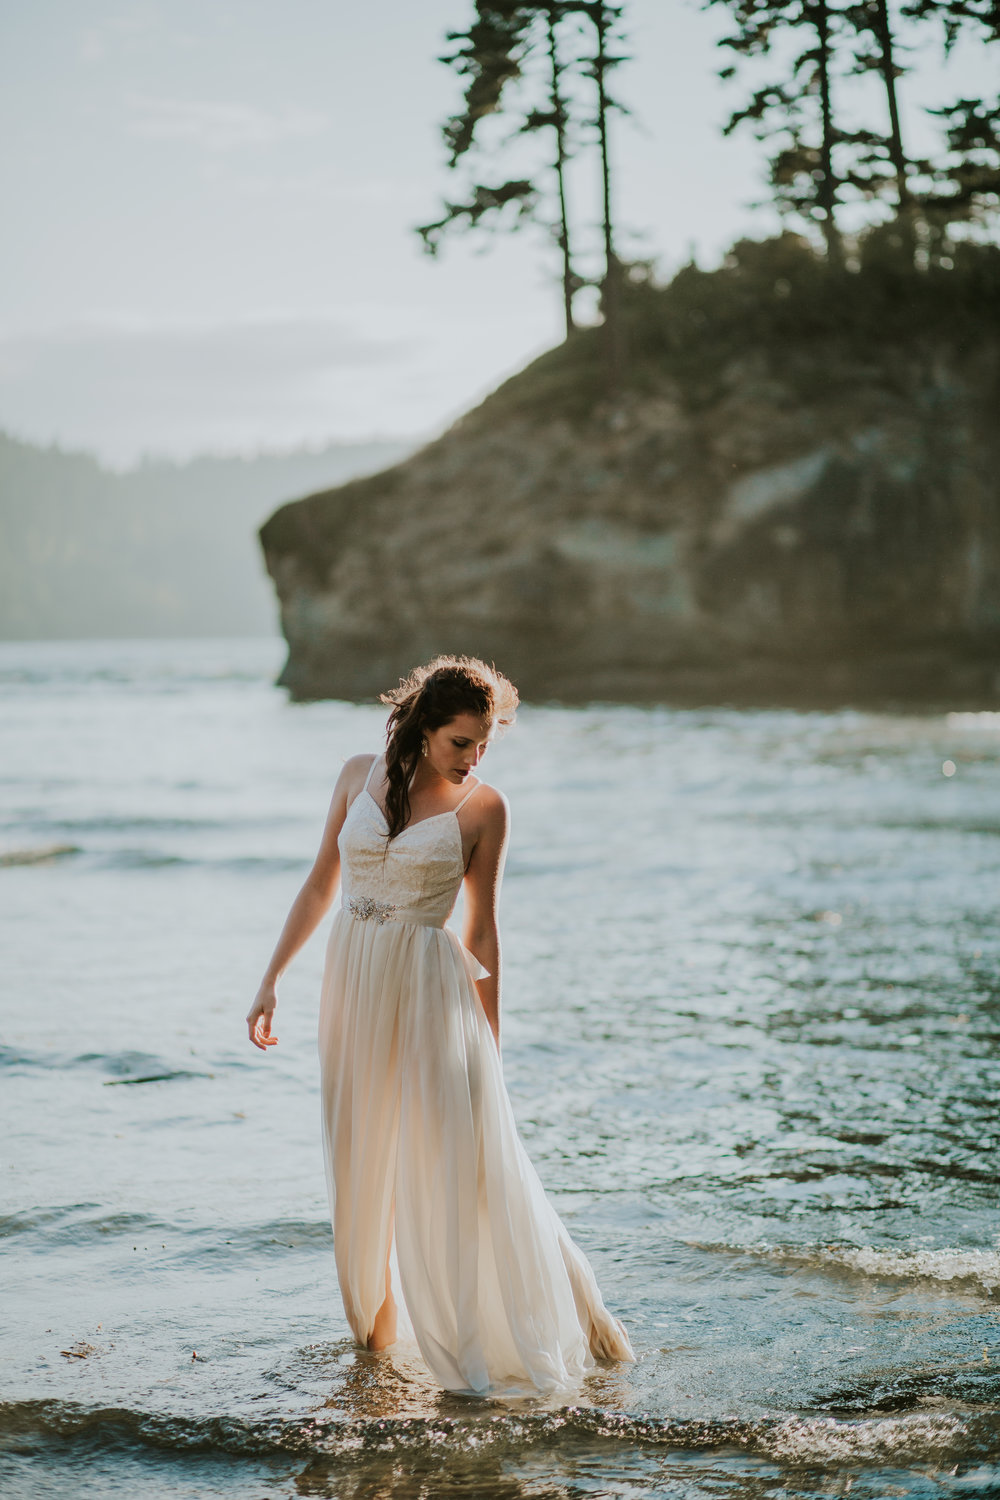 Port-Angeles-Salt-Creek-beach-wedding-bride-PNW-olympic-peninsula-photographer-Kayla-Dawn-Photography-outdoors-golden-hour-dancer-dress (42).jpg